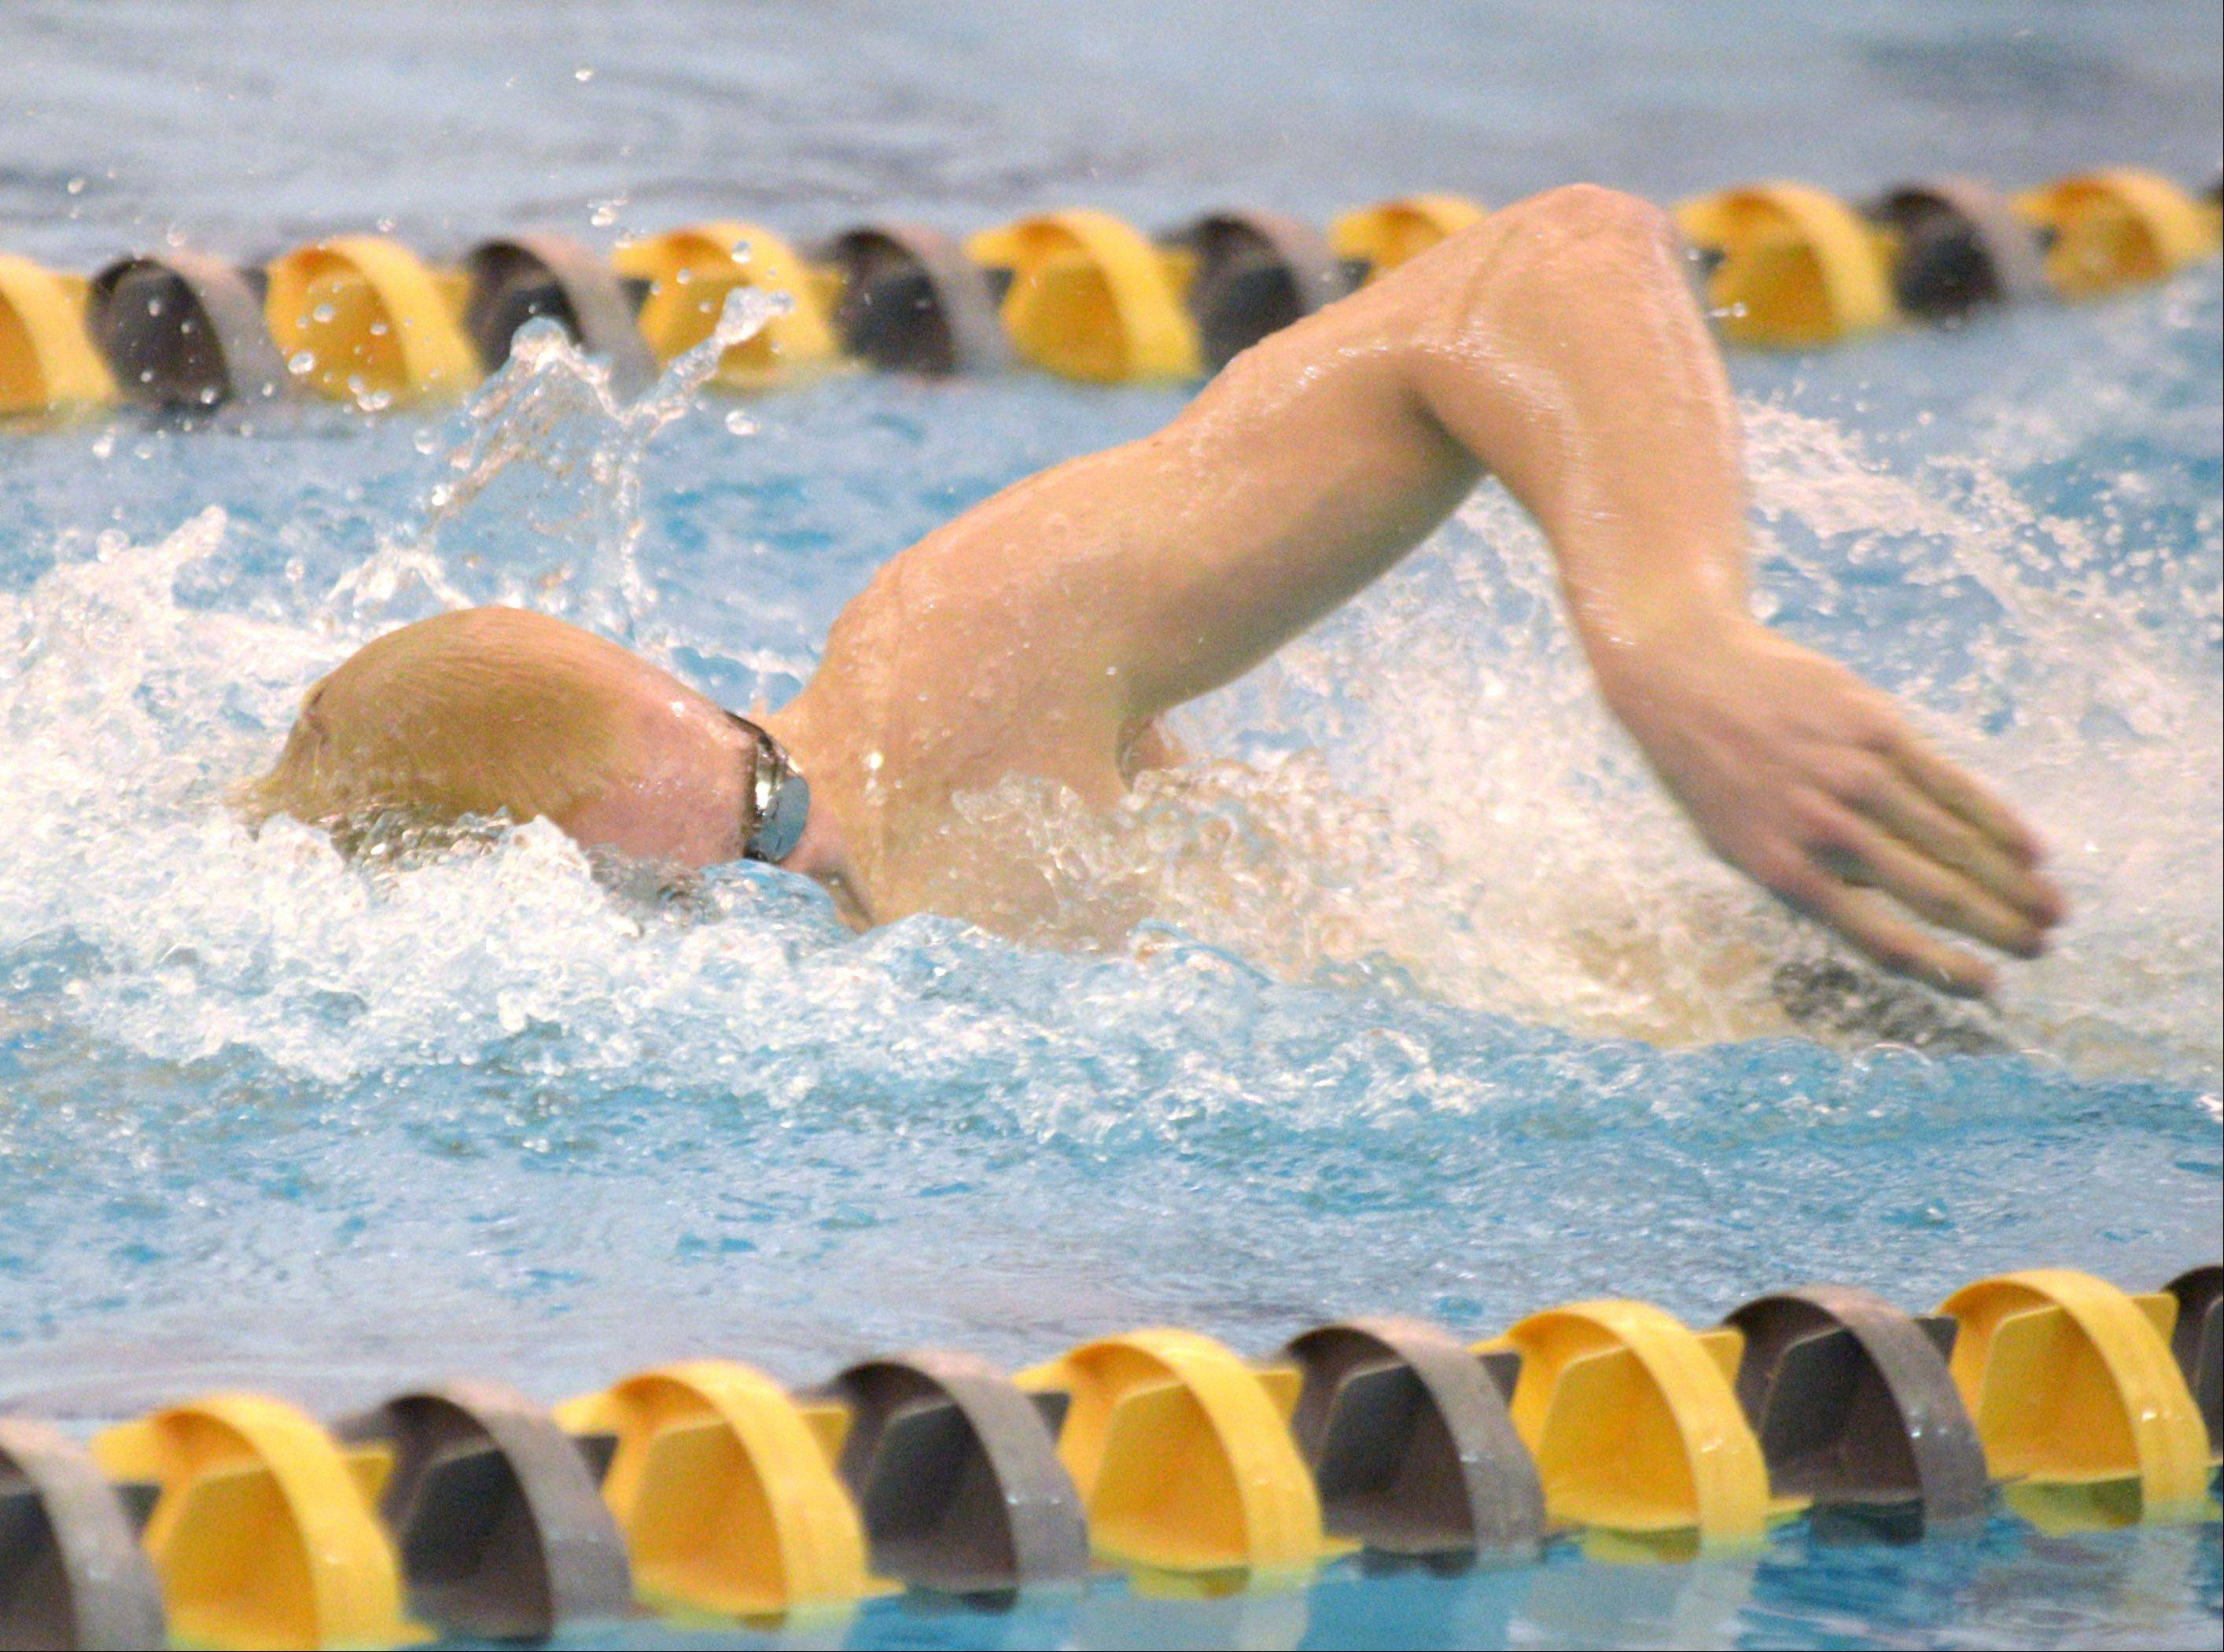 Adan Stacklin of Waubonsie Valley swims the 200 free during the Neuqua Valley boys swimming sectional in Naperville Saturday.